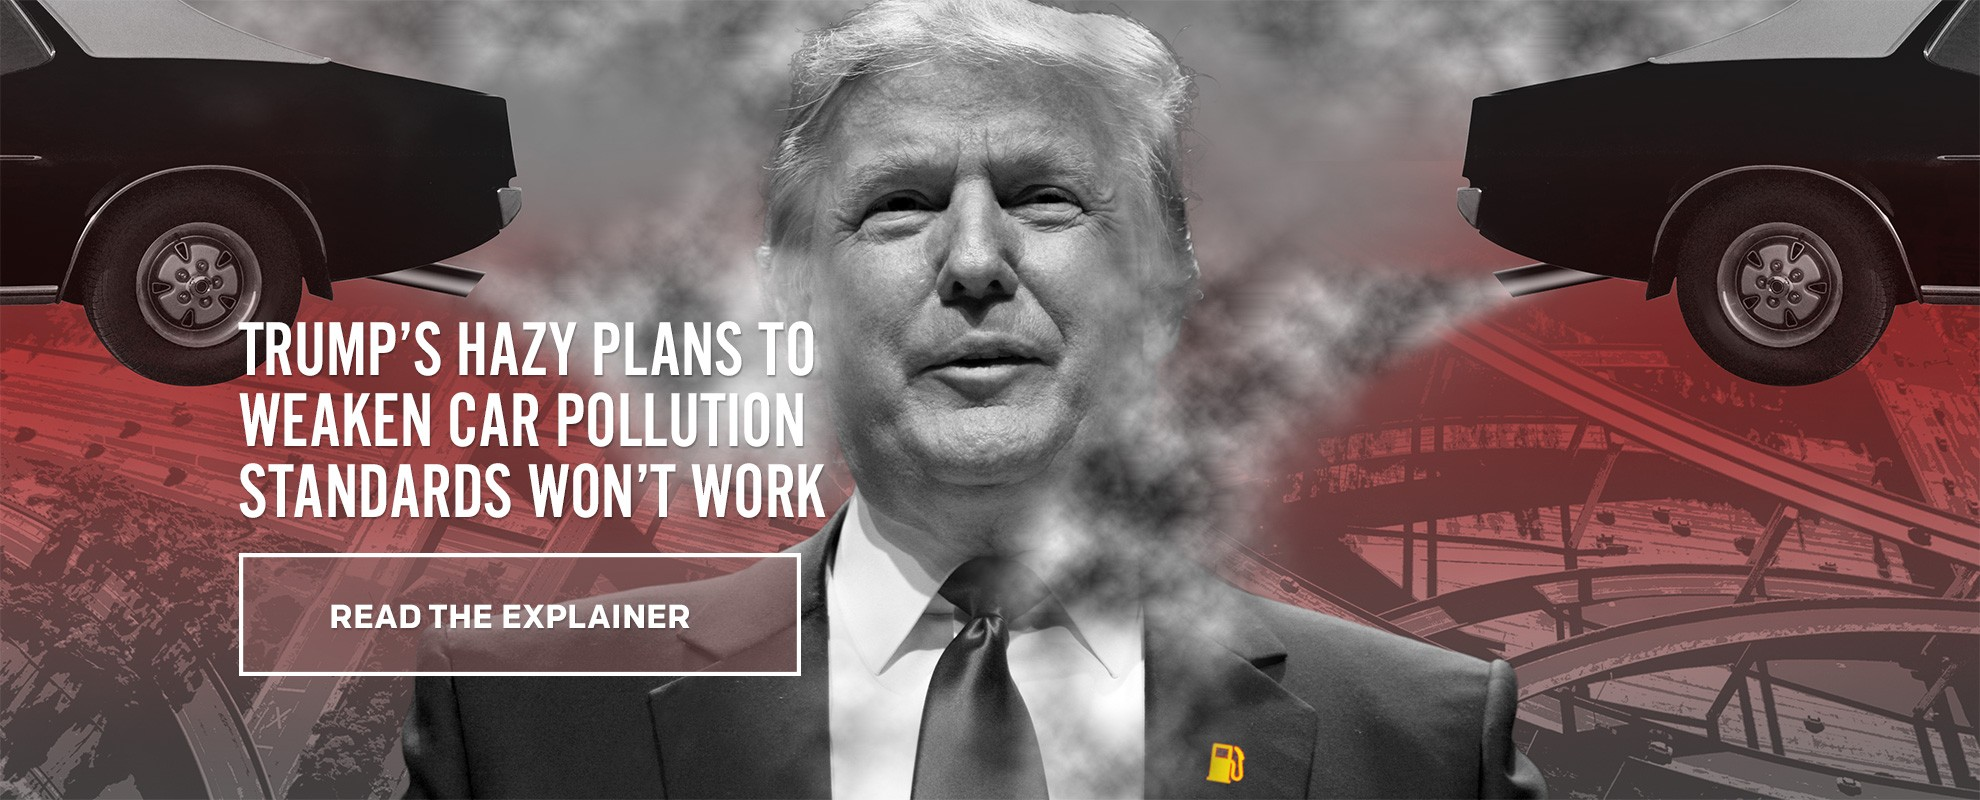 The Trump Administration's Hazy Plans to Weaken Car Pollution Standards Won't Work.